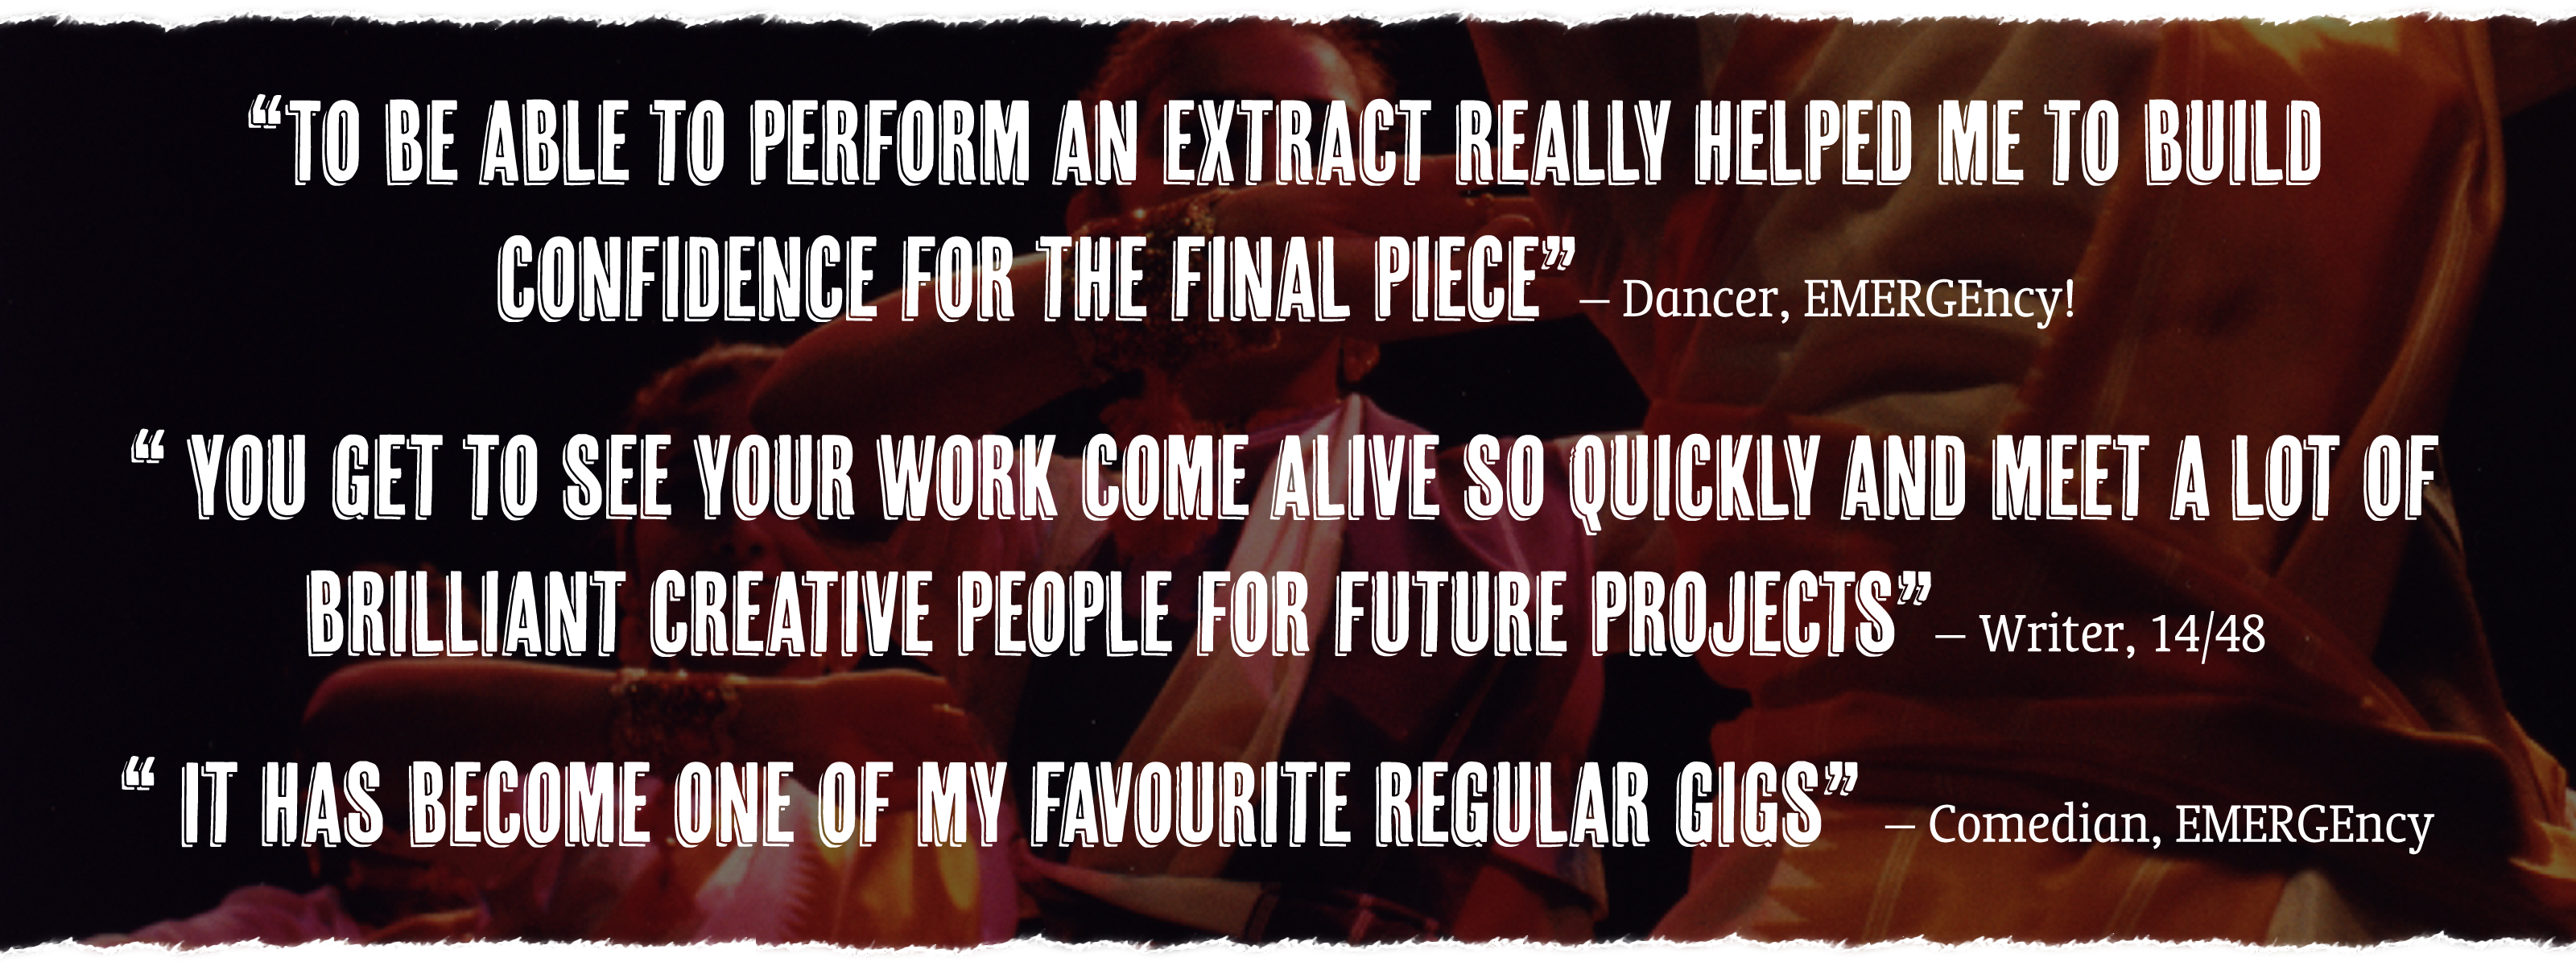 """To be able to perform an extract really helped me to build confidence for the final piece"" - Dancer, EMERGEncy! ""You get to see your work come alive so quickly and meet a lot of brilliant creative people for future projects"" - Writer, 14/48. ""It has become one of my favourite regular gigs"" - Comedian, EMERGEncy"